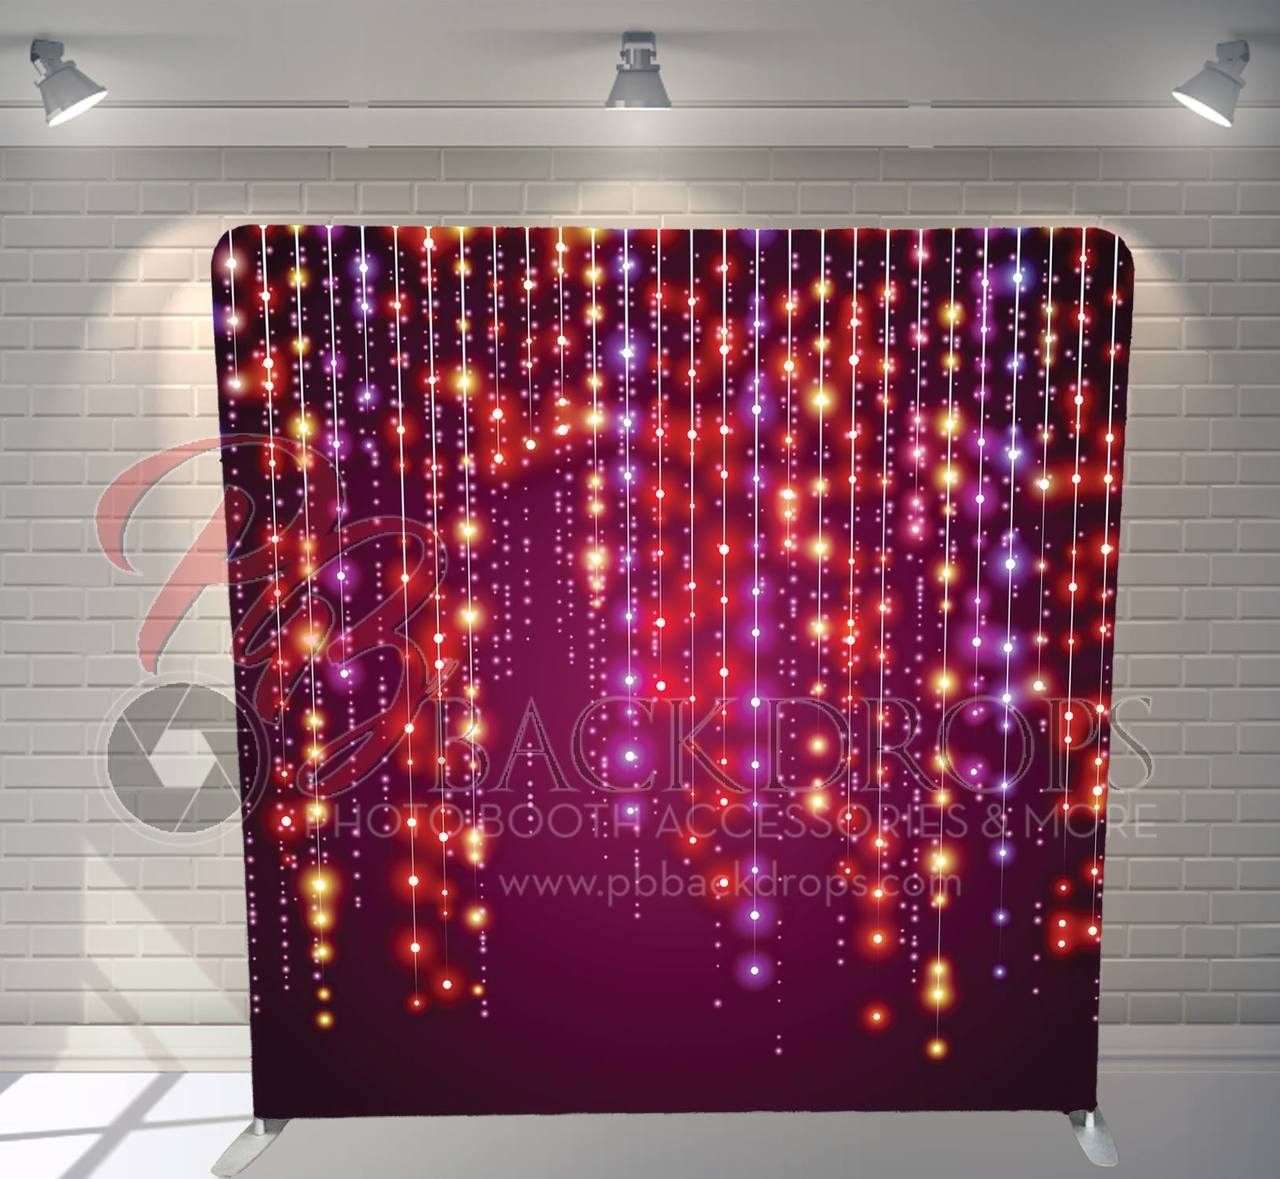 dangling_lights_pb_pillow__16417.1530639750.jpg